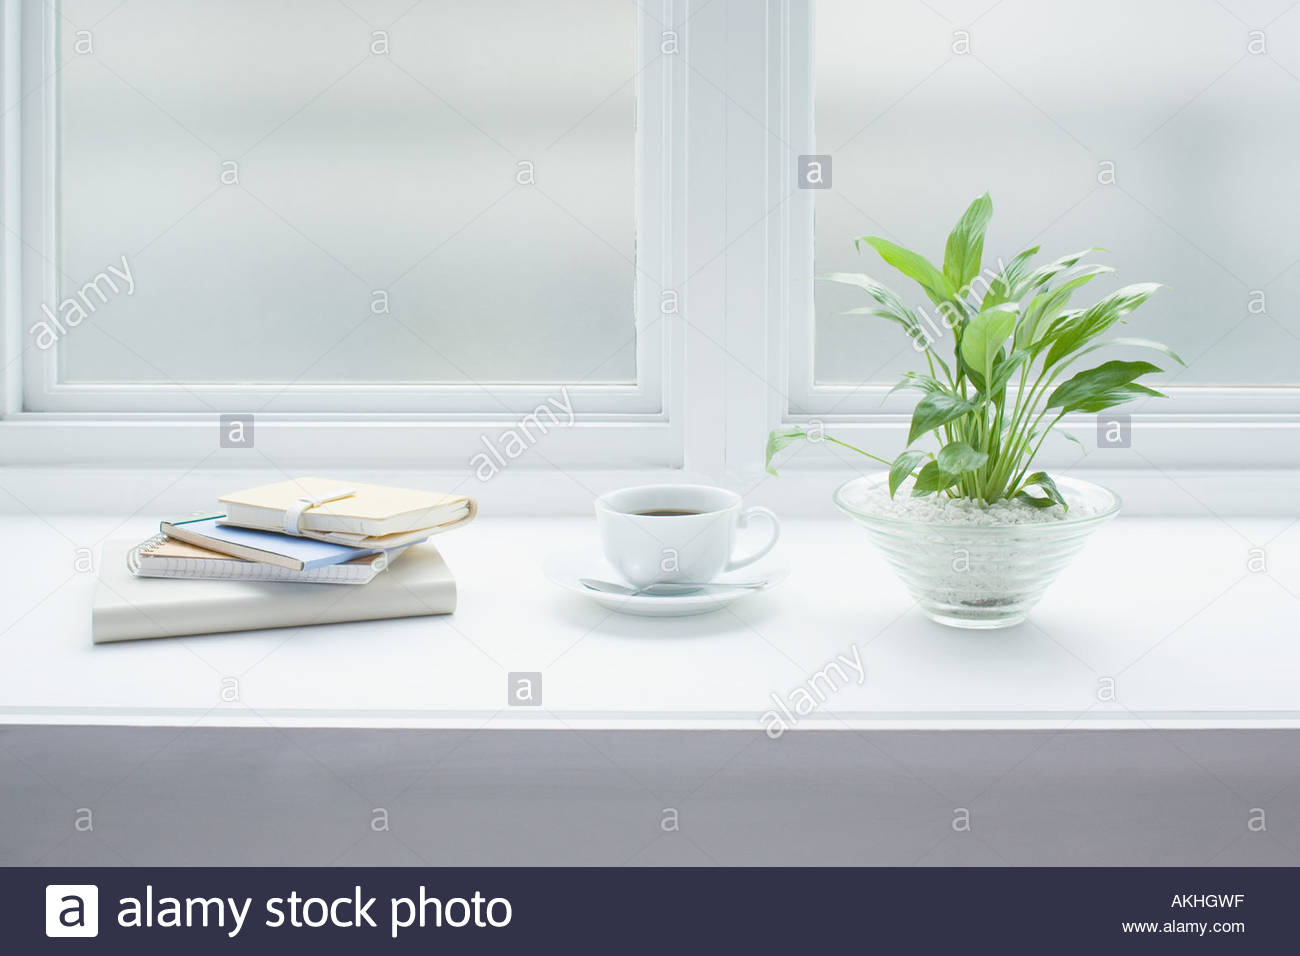 Coffee and a plant on windowsill - Stock Image